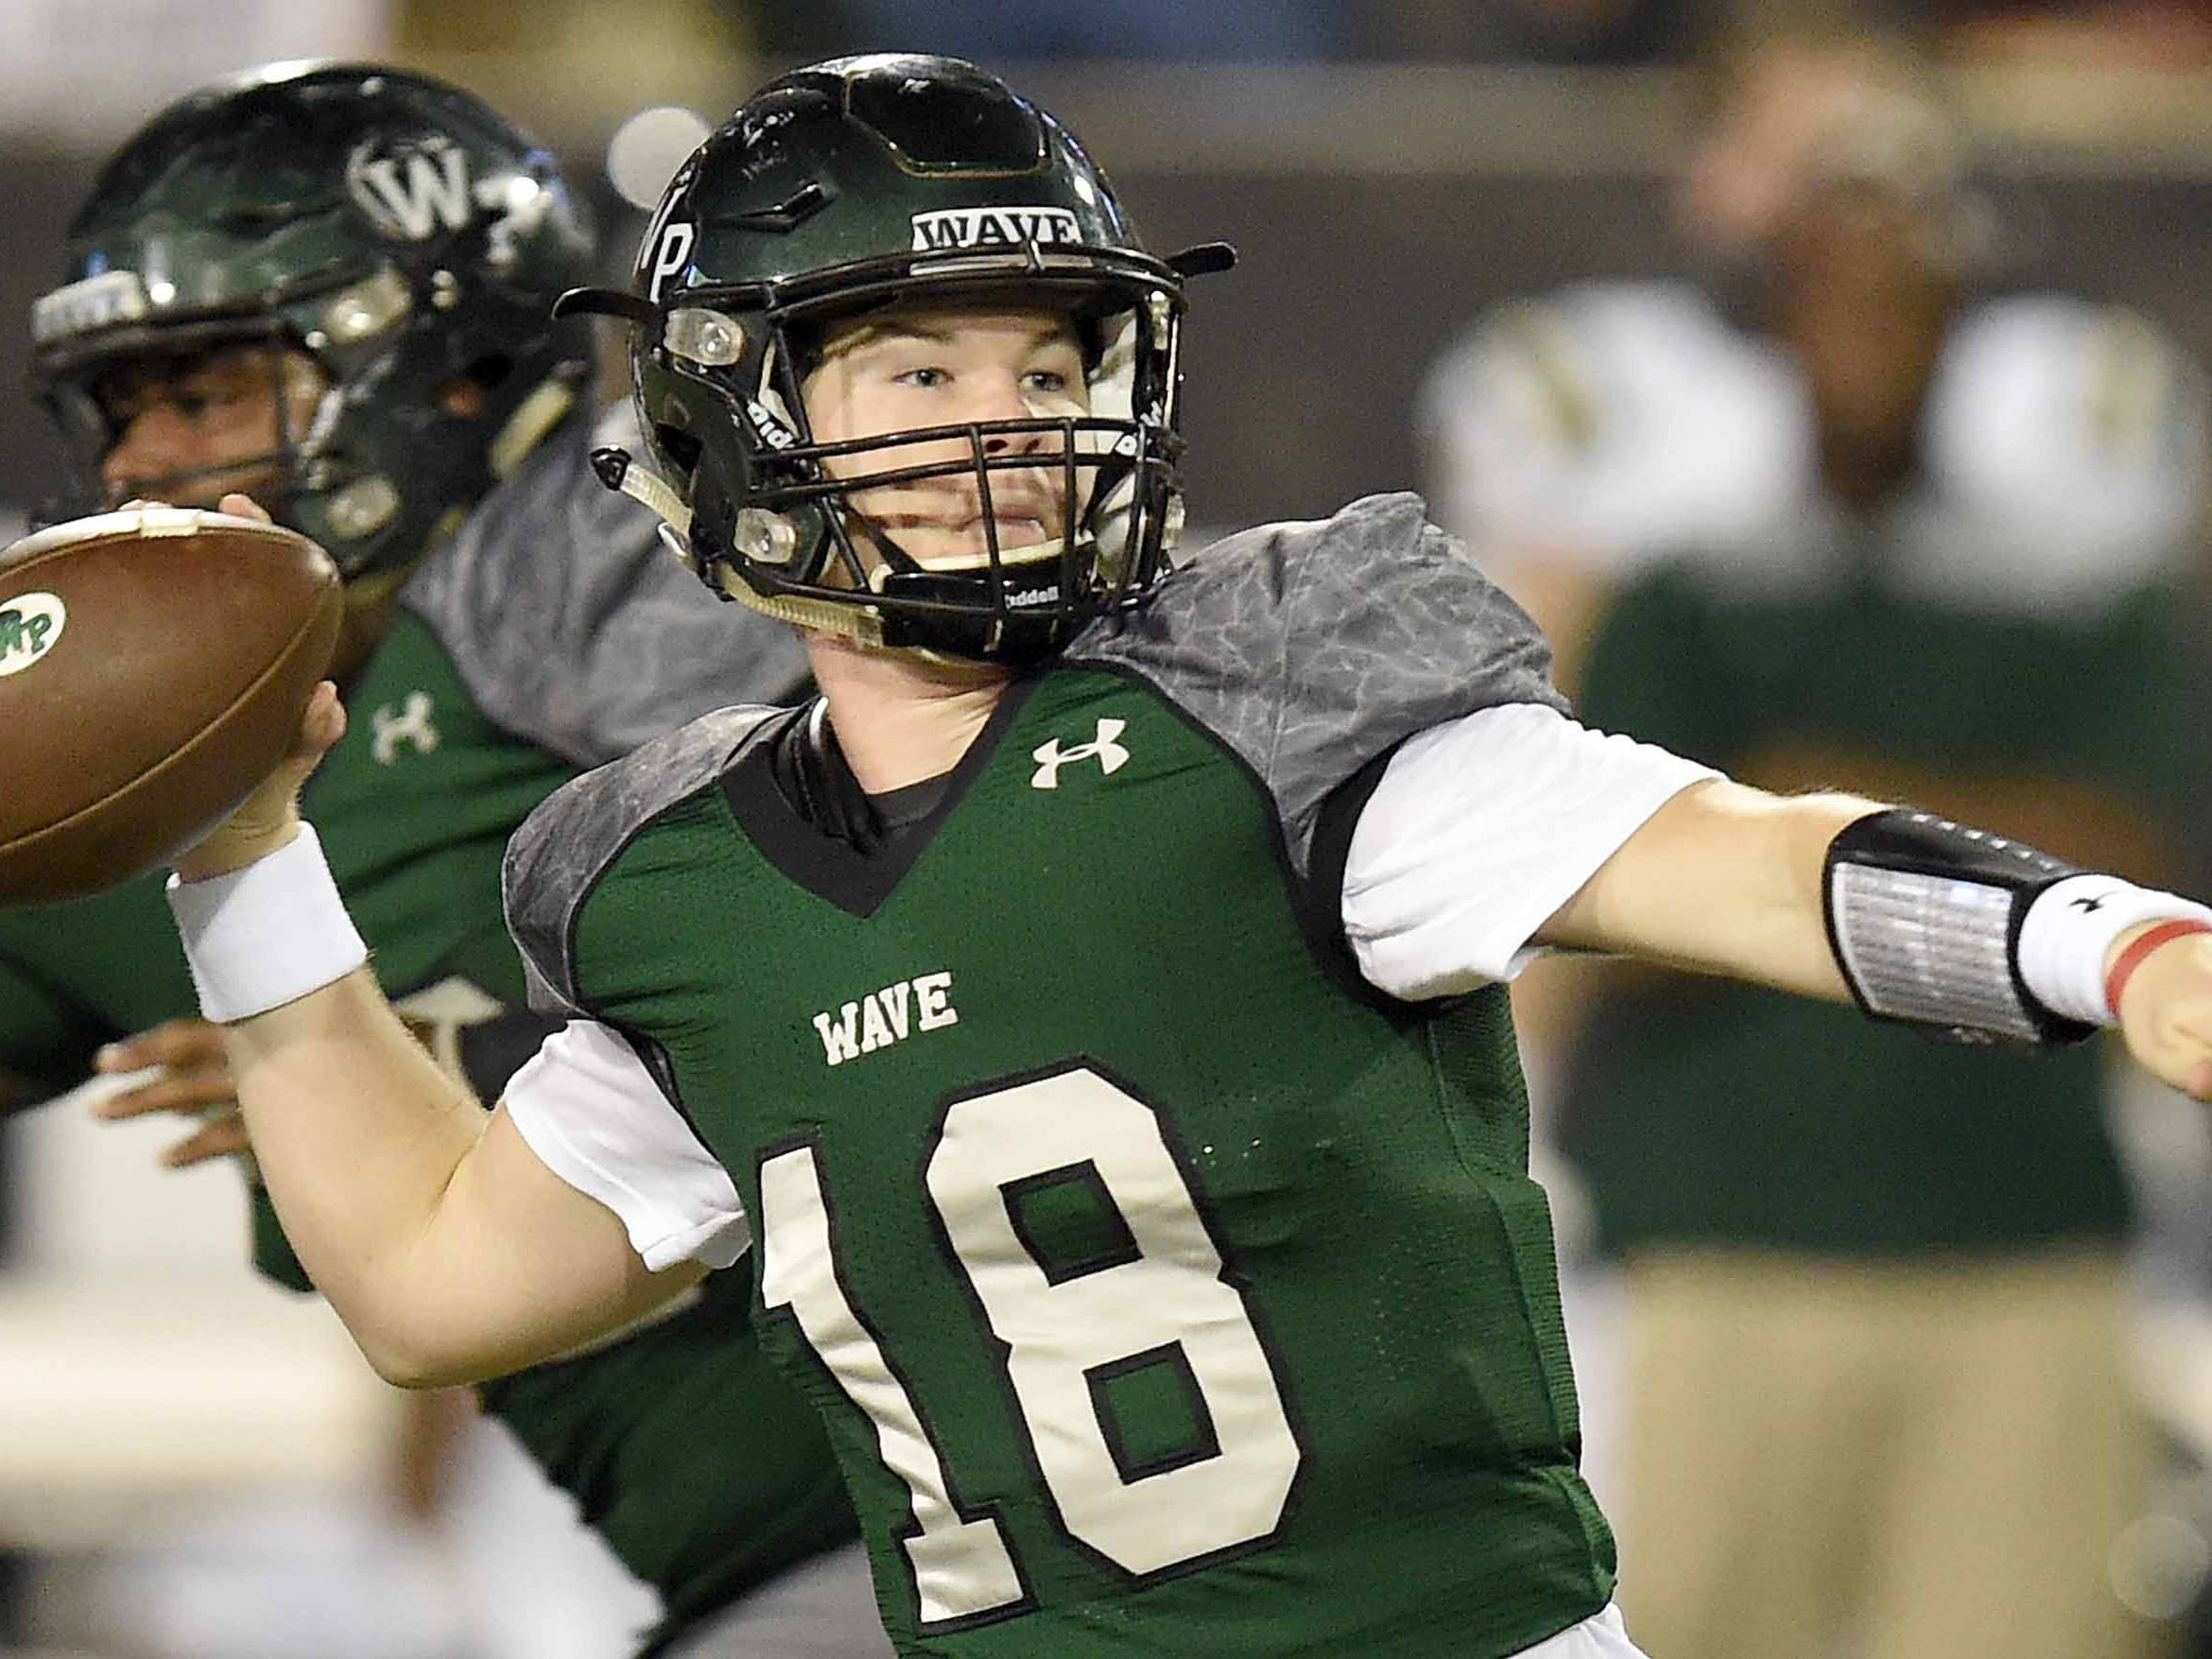 West Point quarterback Jake Chambless (18) throws for a touchdown against West Jones on Saturday, December 1, 2018, in the MHSAA BlueCross BlueShield Gridiron Classic High School Football Championships in M.M. Roberts Stadium on the University of Southern Mississippi campus in Hattiesburg, Miss.